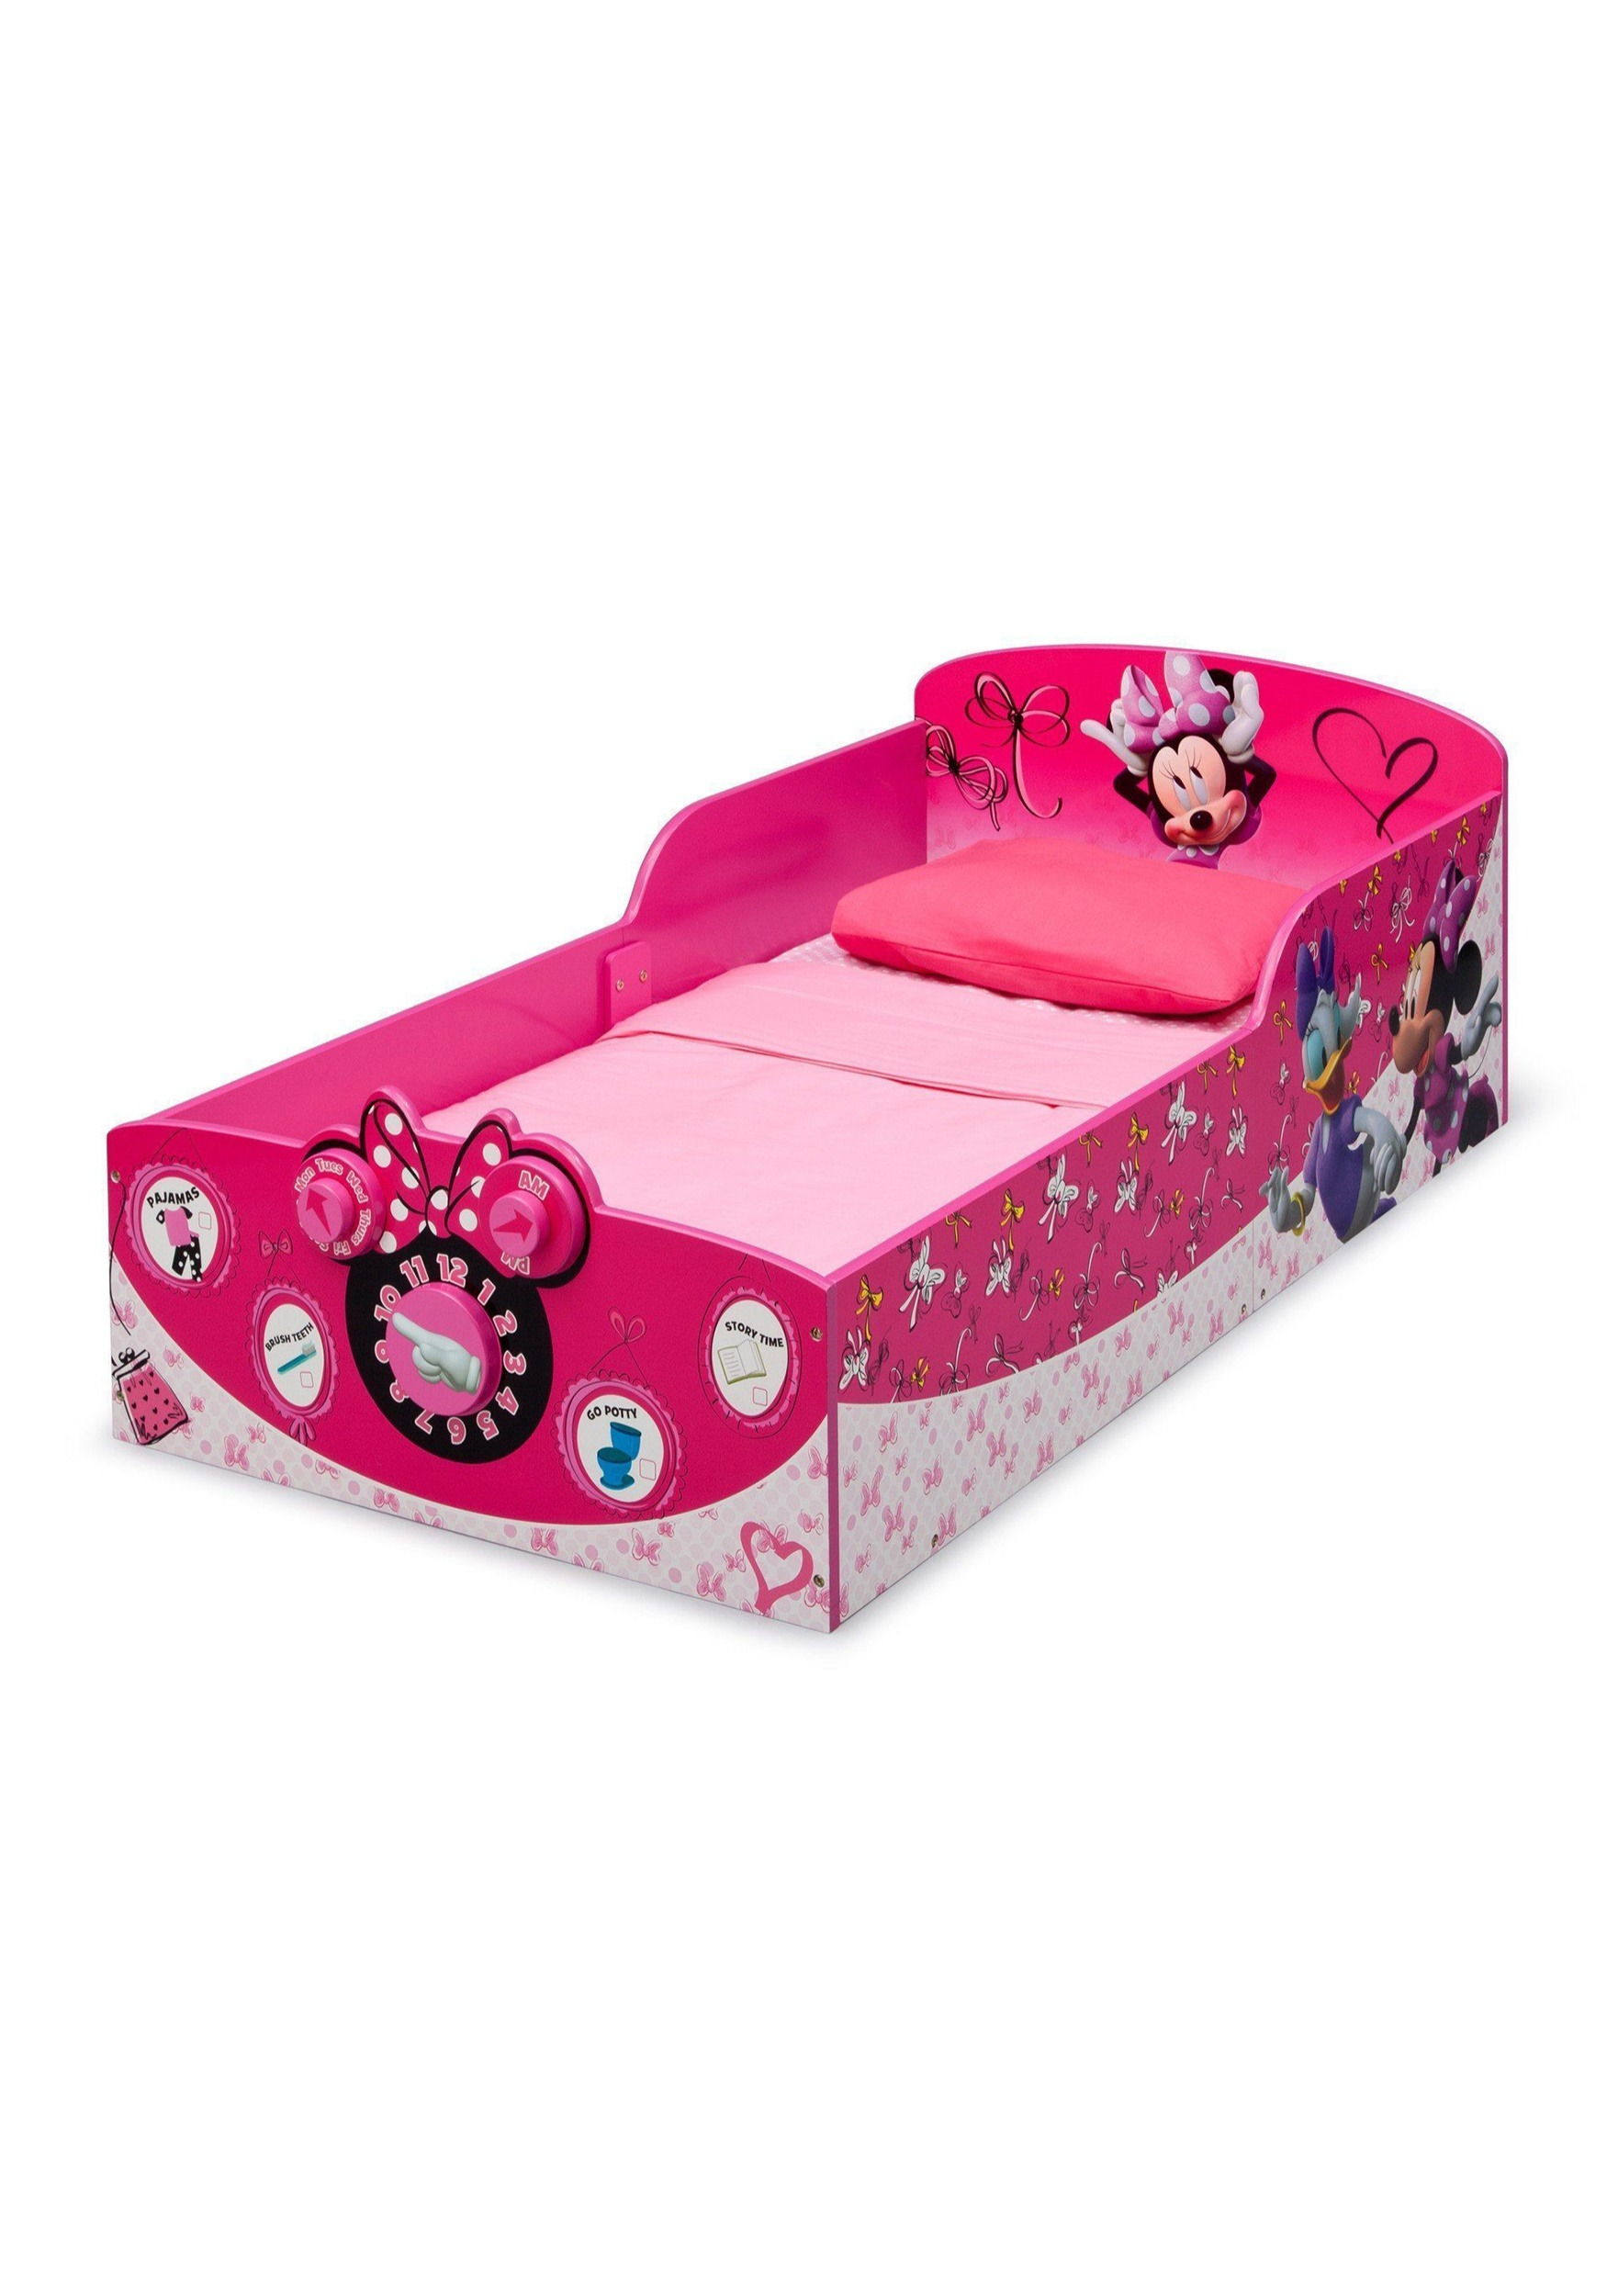 Wooden Toddler Minnie Mouse Bed